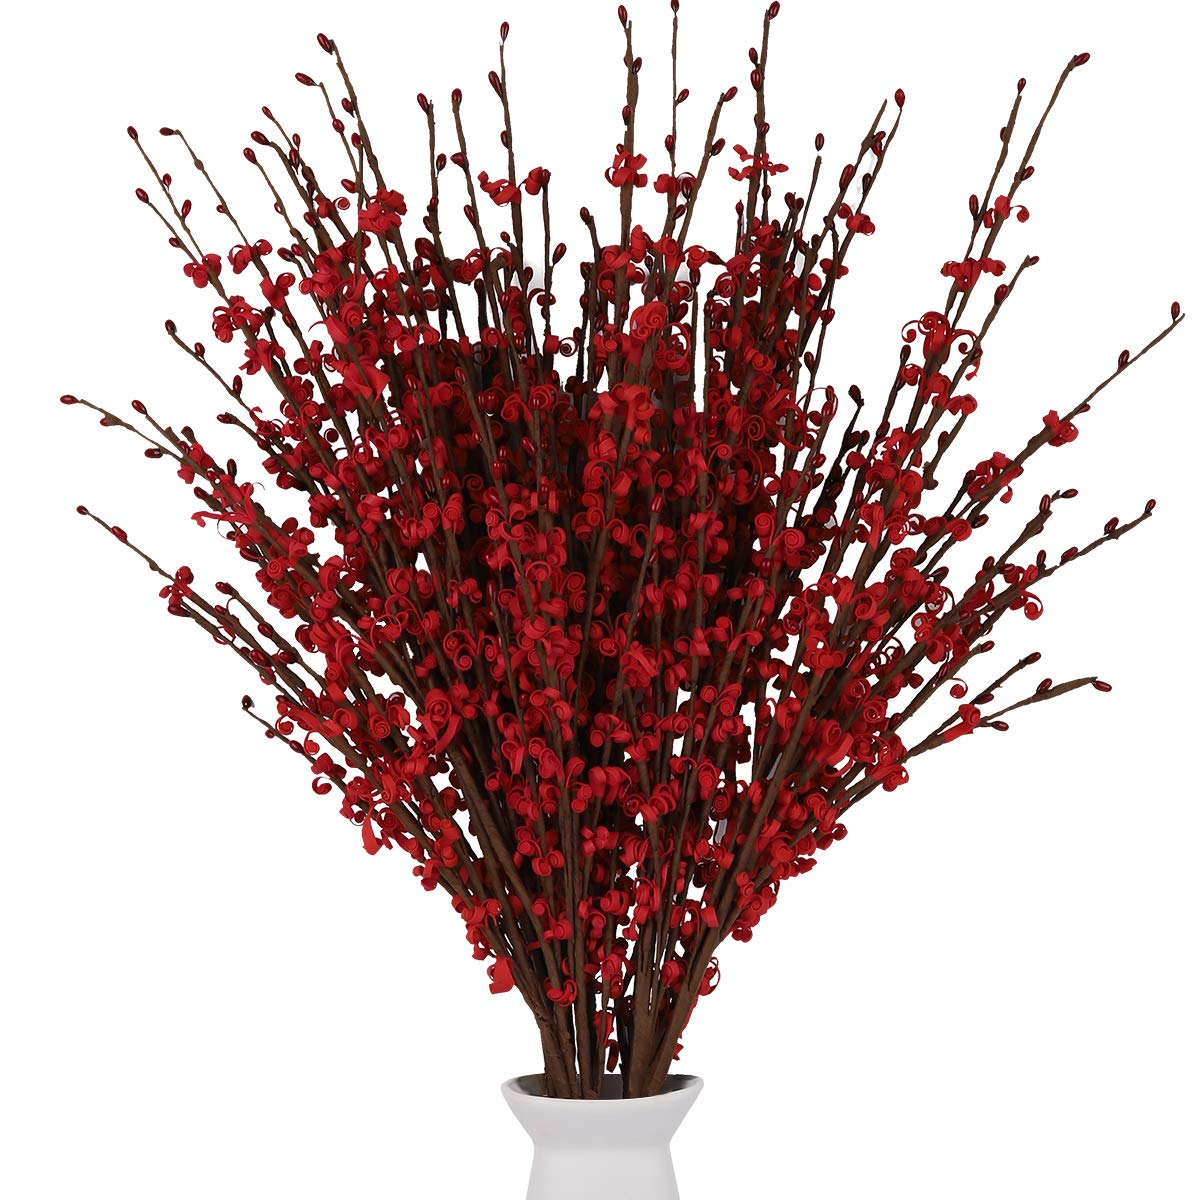 """Artificial Flowers 12 Pcs Faux Jasmine Fake Flower 29.5"""" Long, PE Material Roll Artificial Flower Plants for DIY Home Office Party Hotel Restaurant Wedding Decor (Red)"""